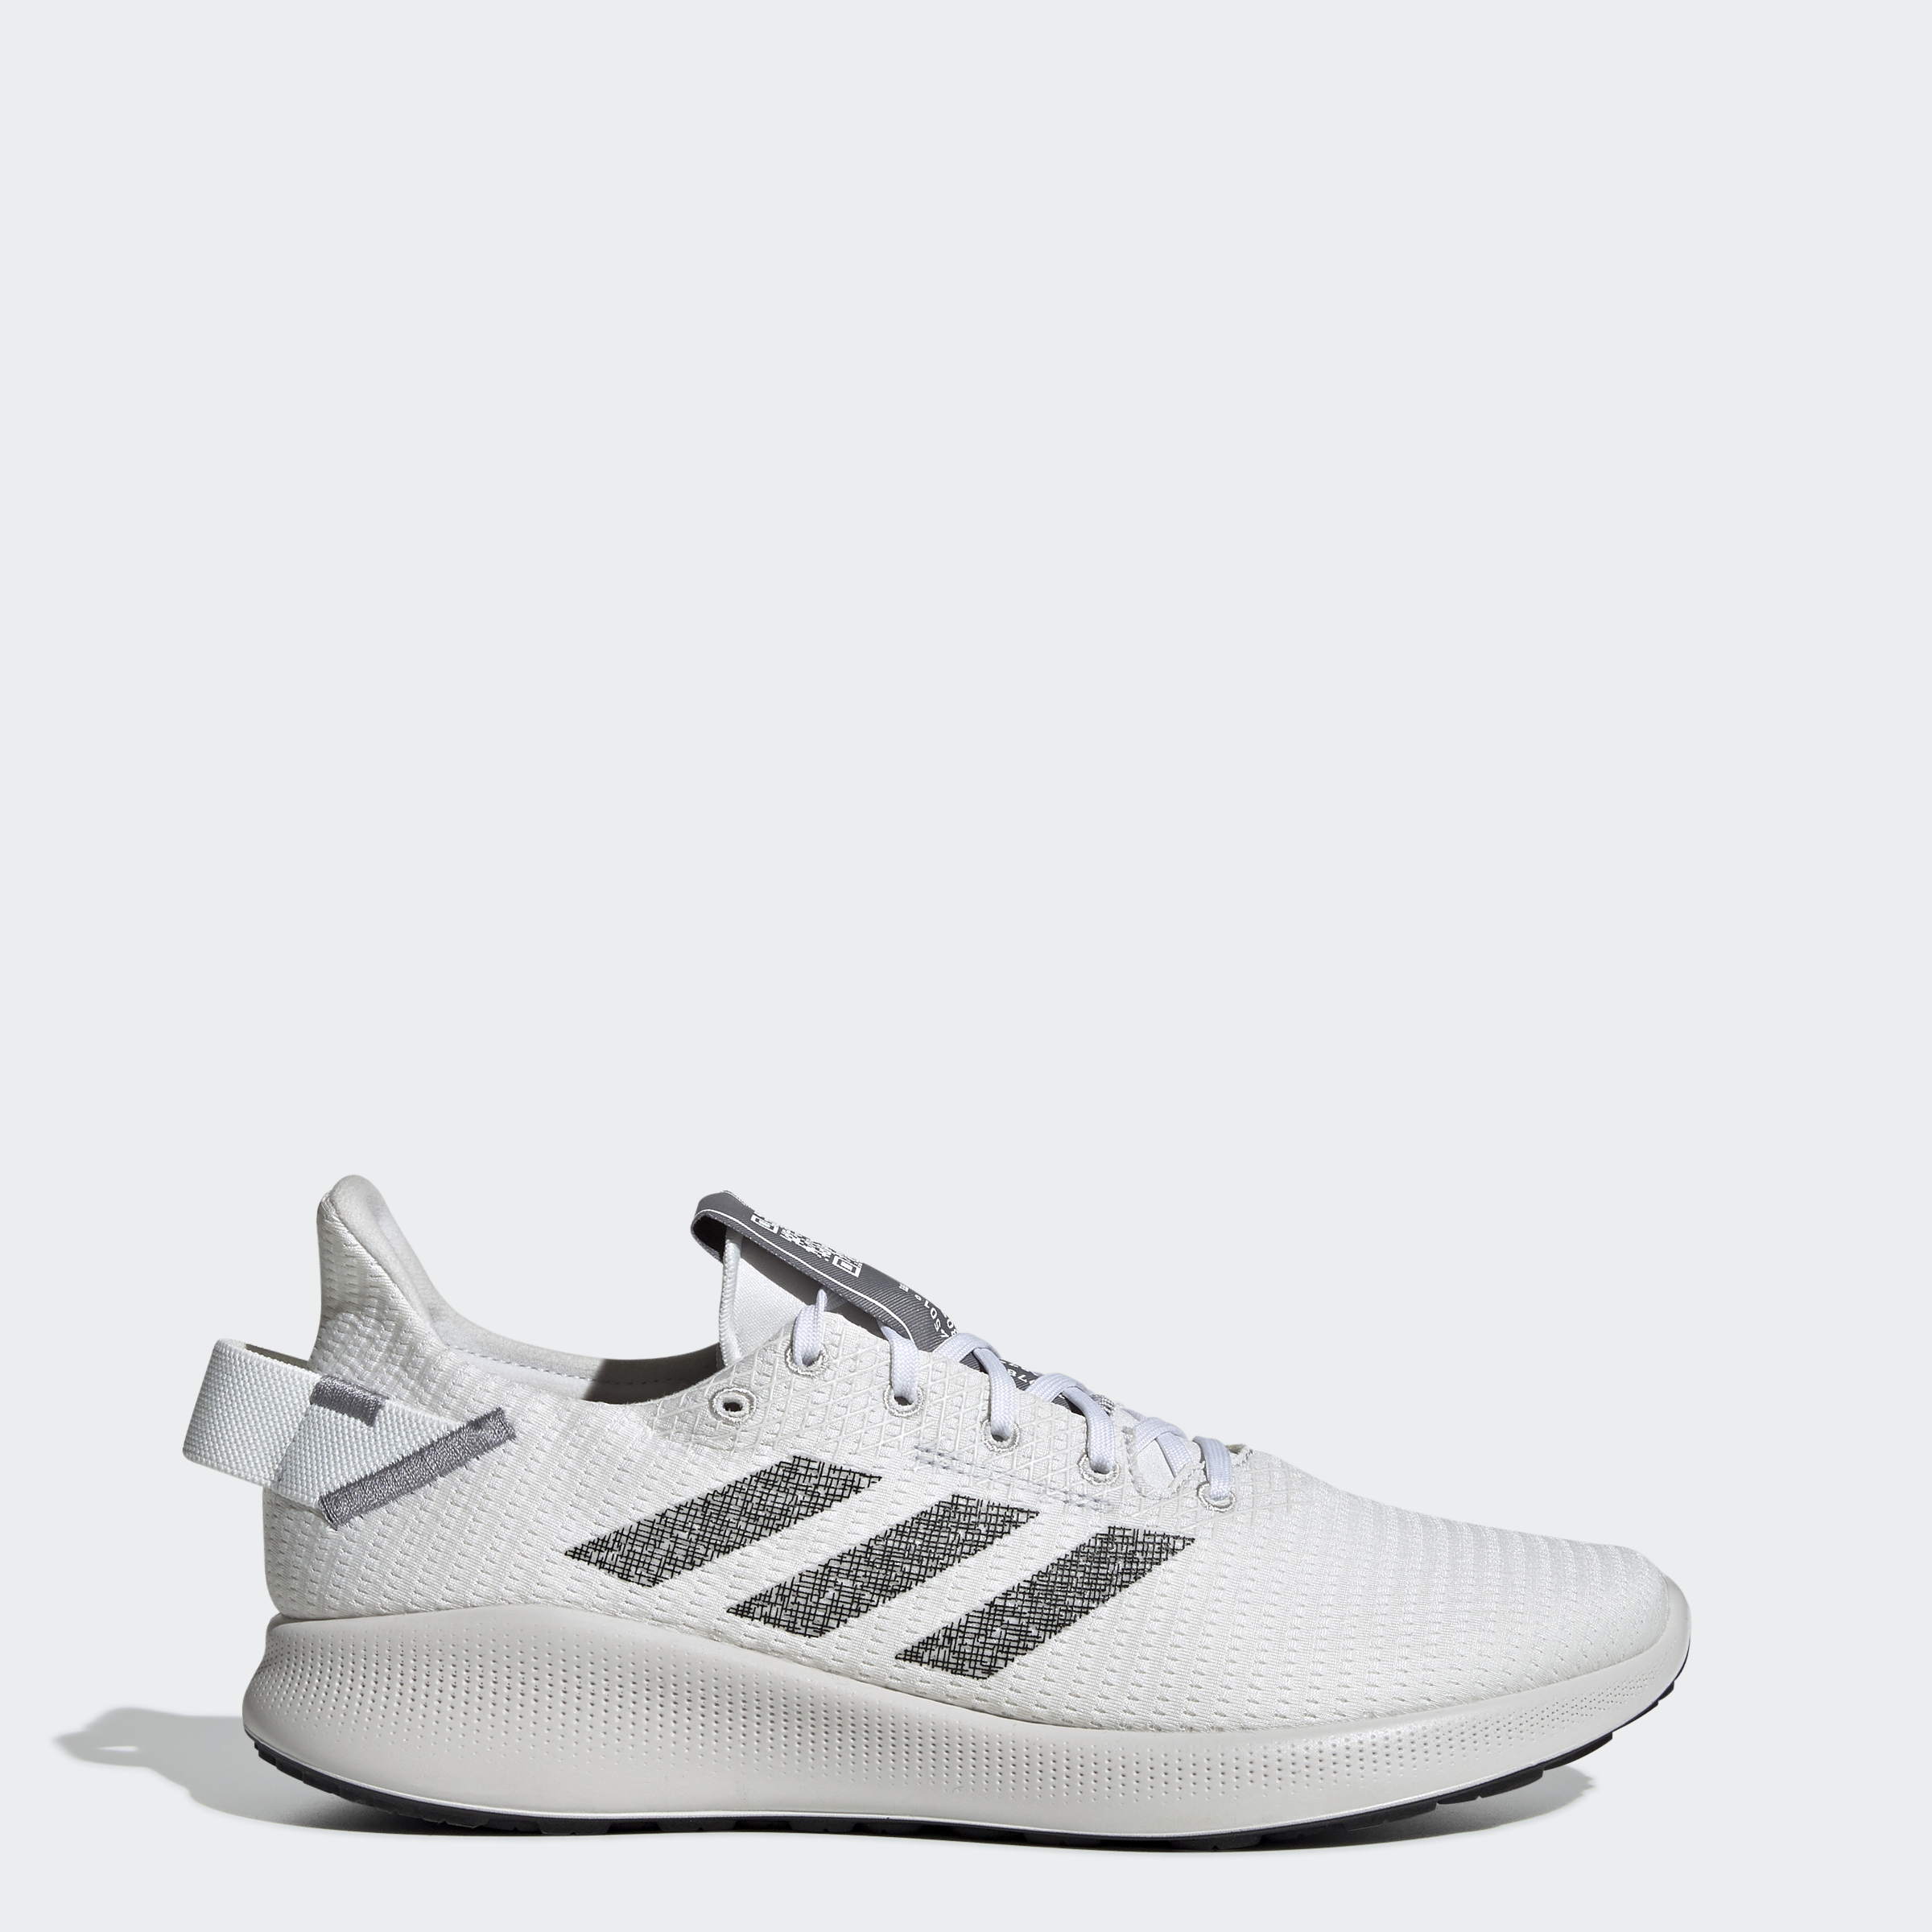 adidas-Sensebounce-Street-Shoes-Men-039-s miniatura 10